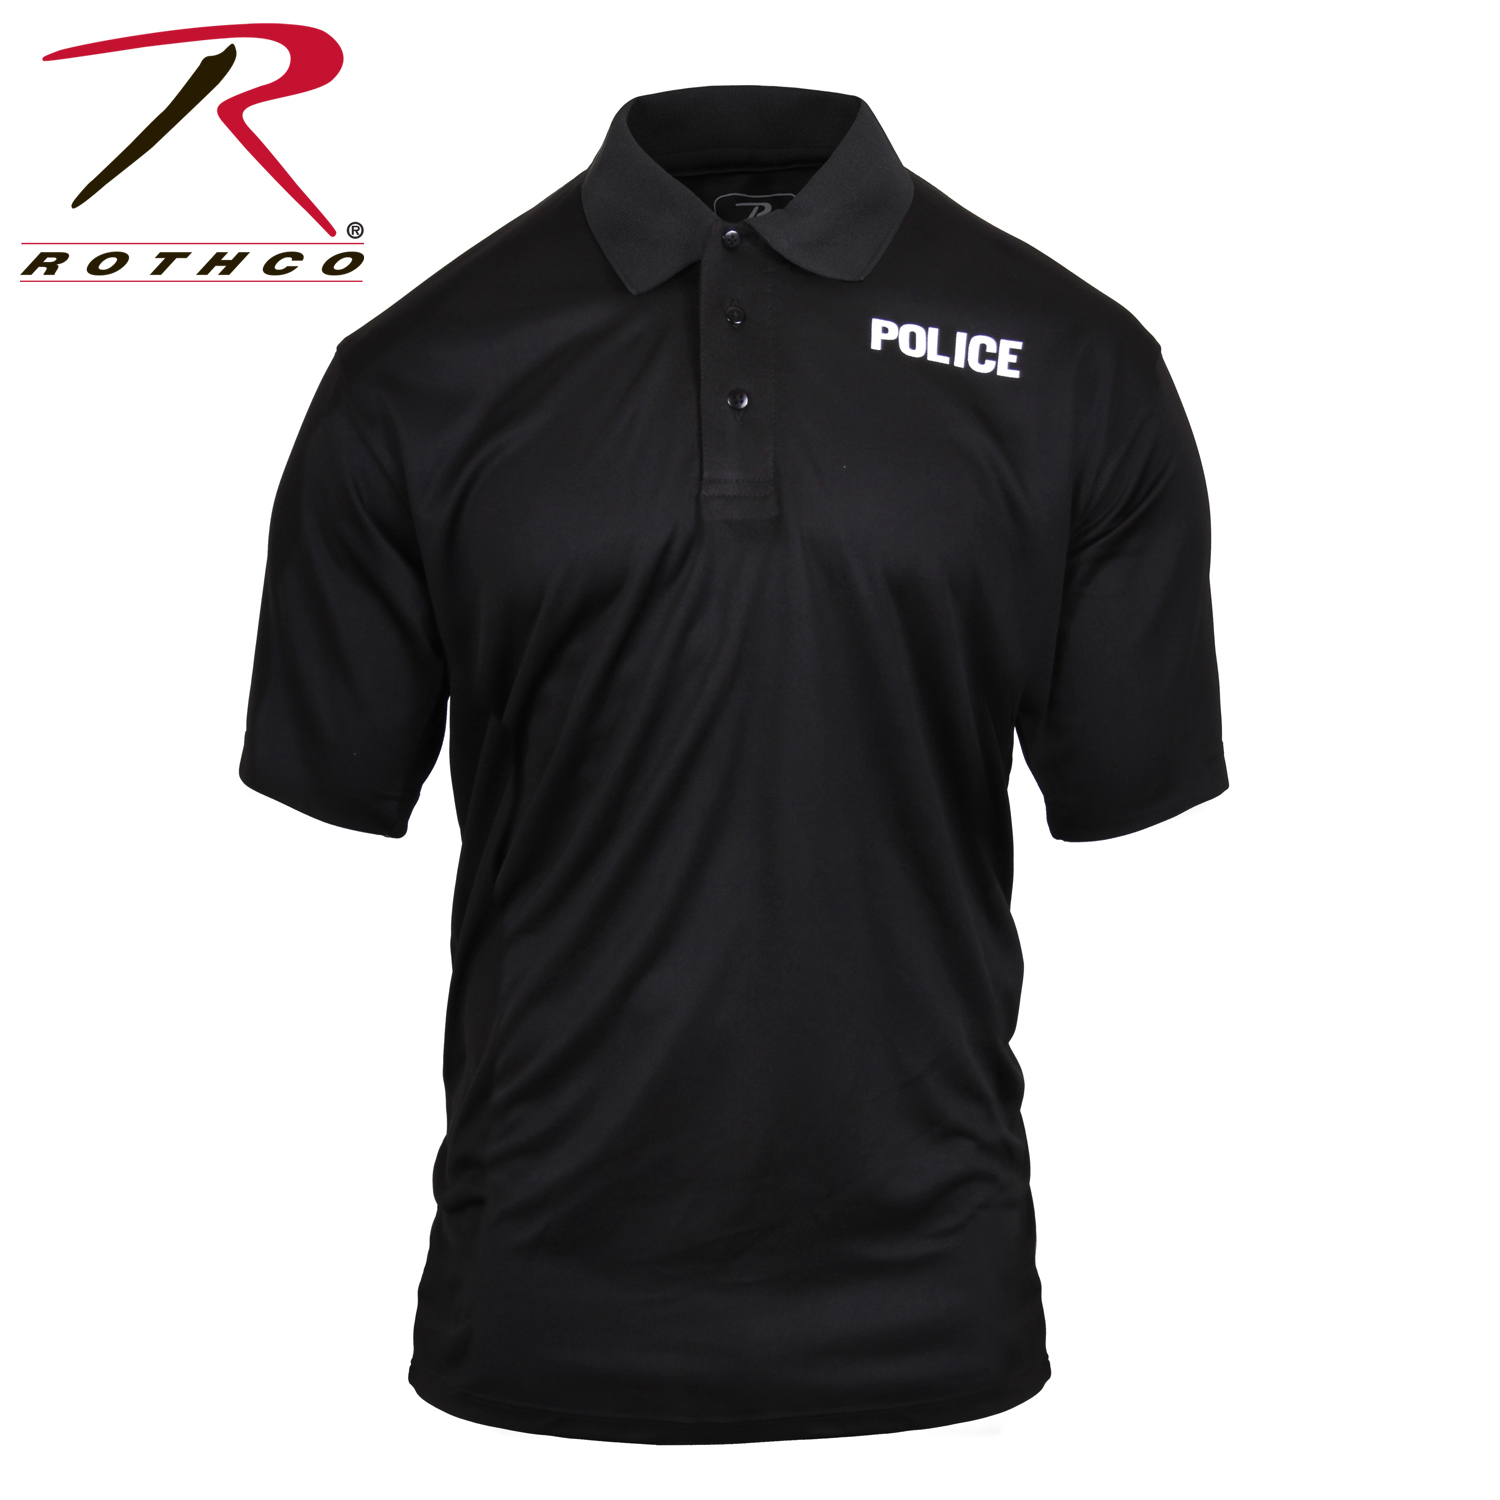 Rothco moisture wicking public safety polo shirt for Moisture wicking golf shirts